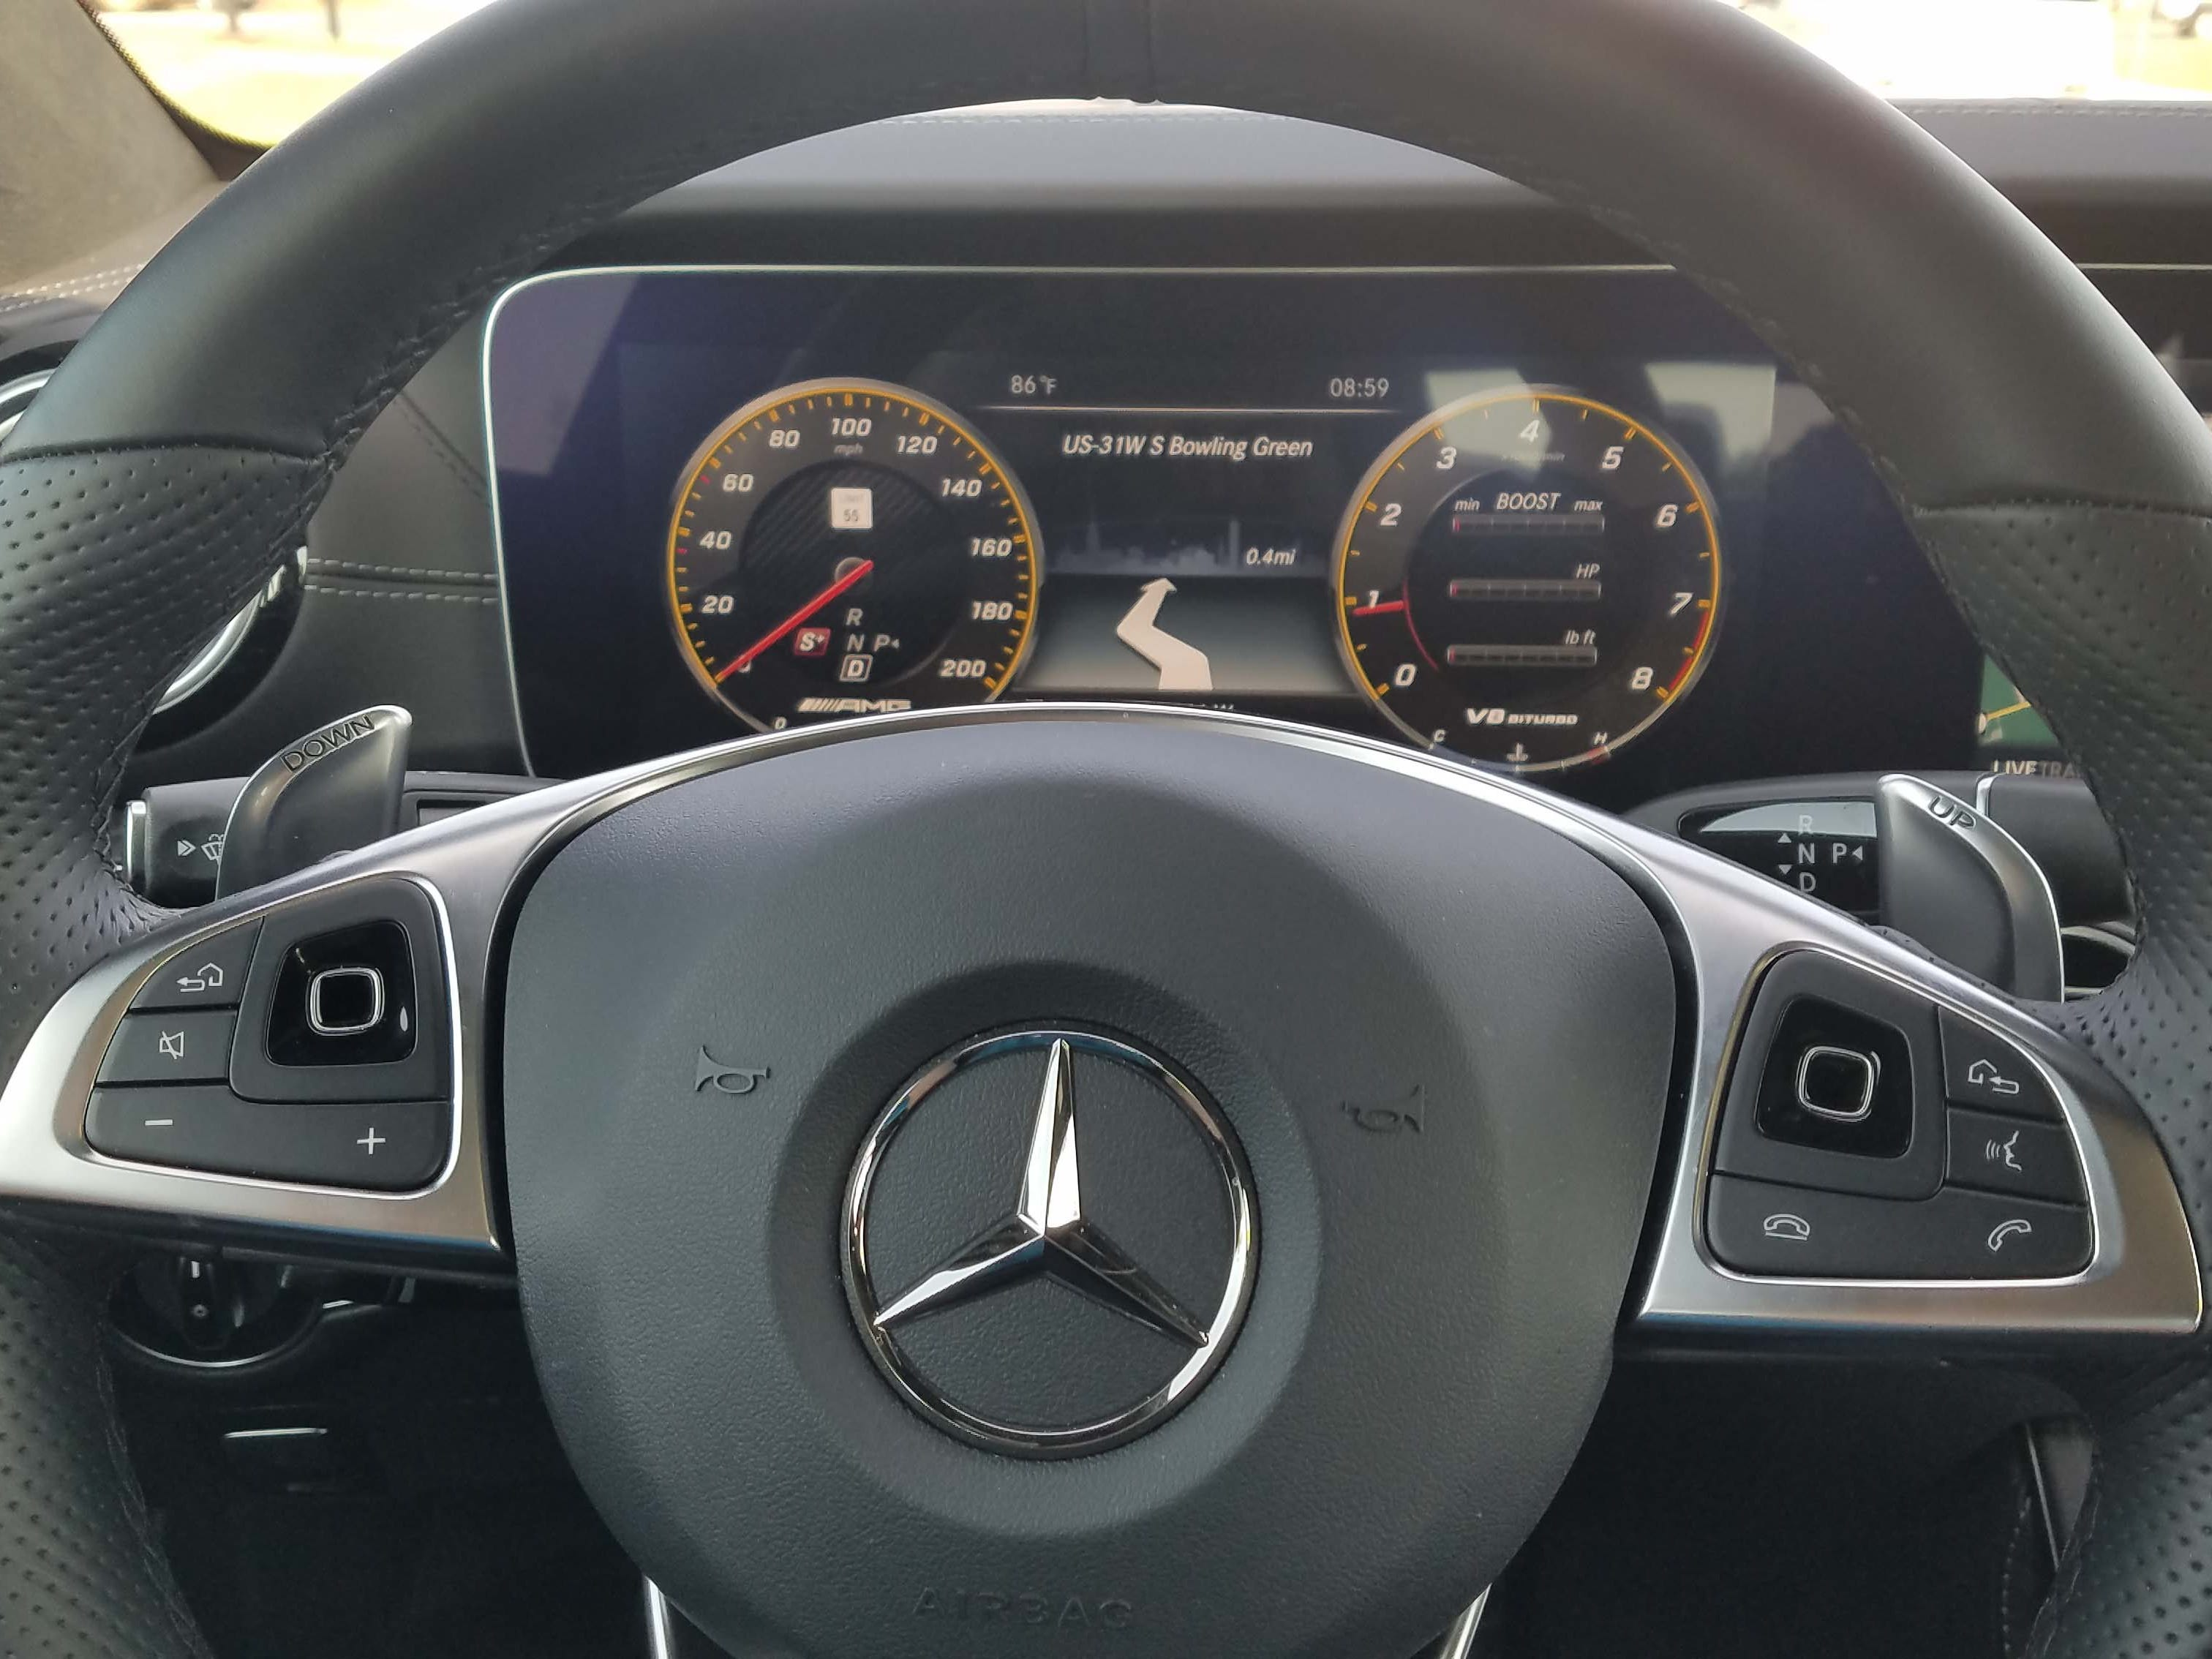 The Mercedes-AMG E63 S wagon features clever, miniature mouse pads on the steering wheel to help navigate the digital instrument display.